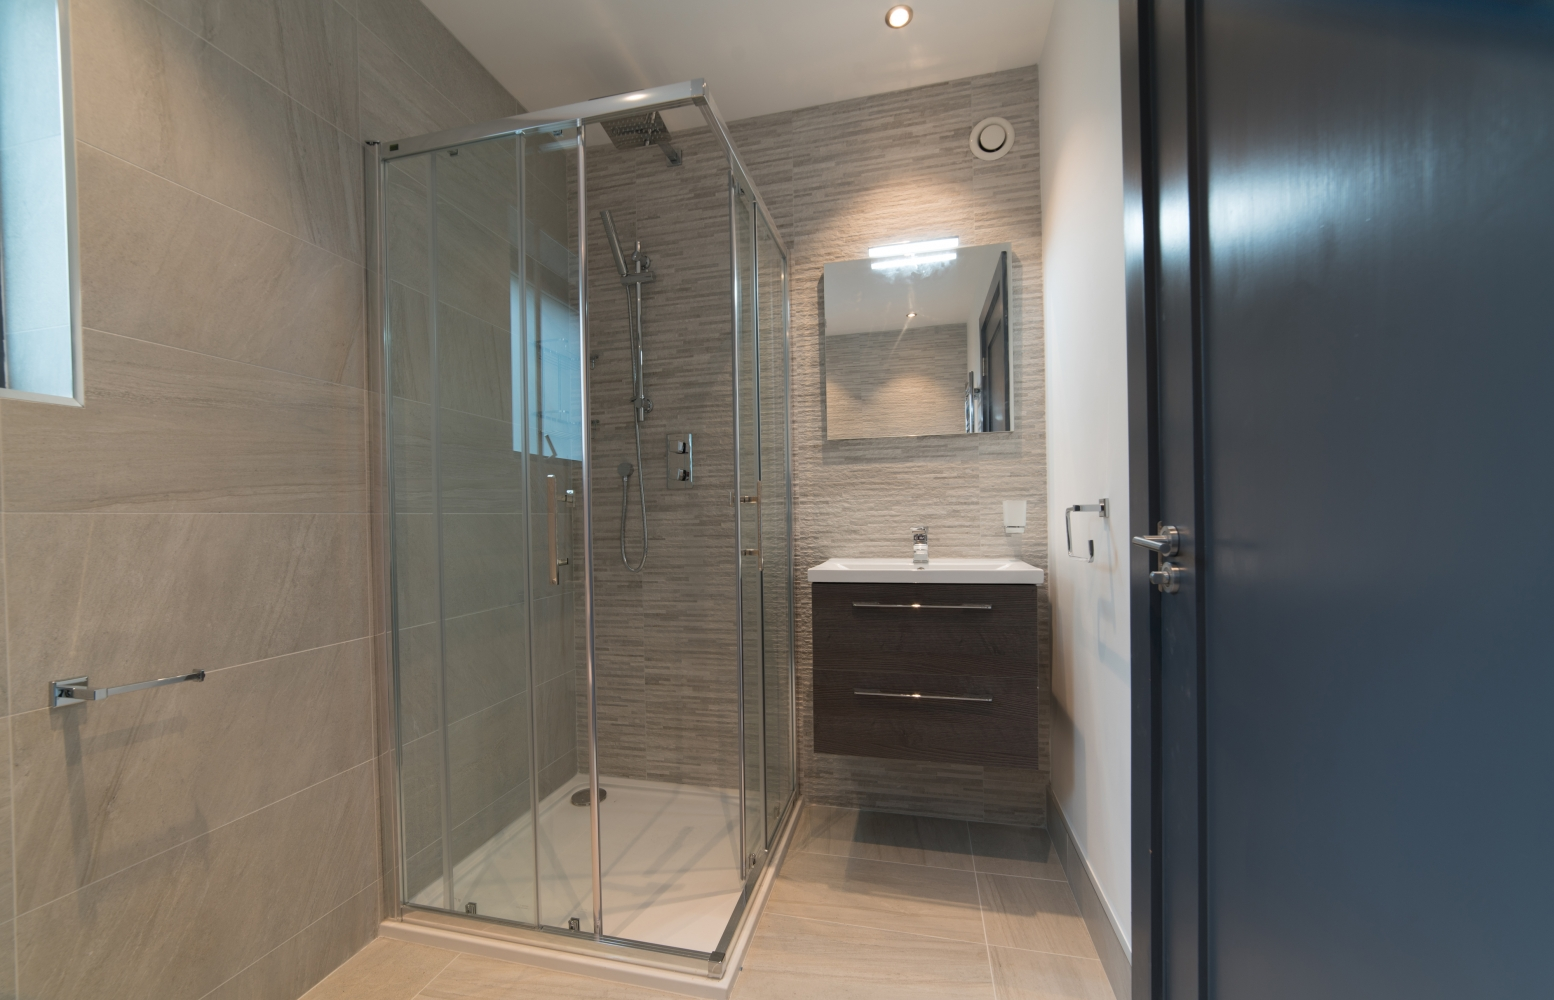 Award Winning Architect Bathroom Design Dublin Ireland